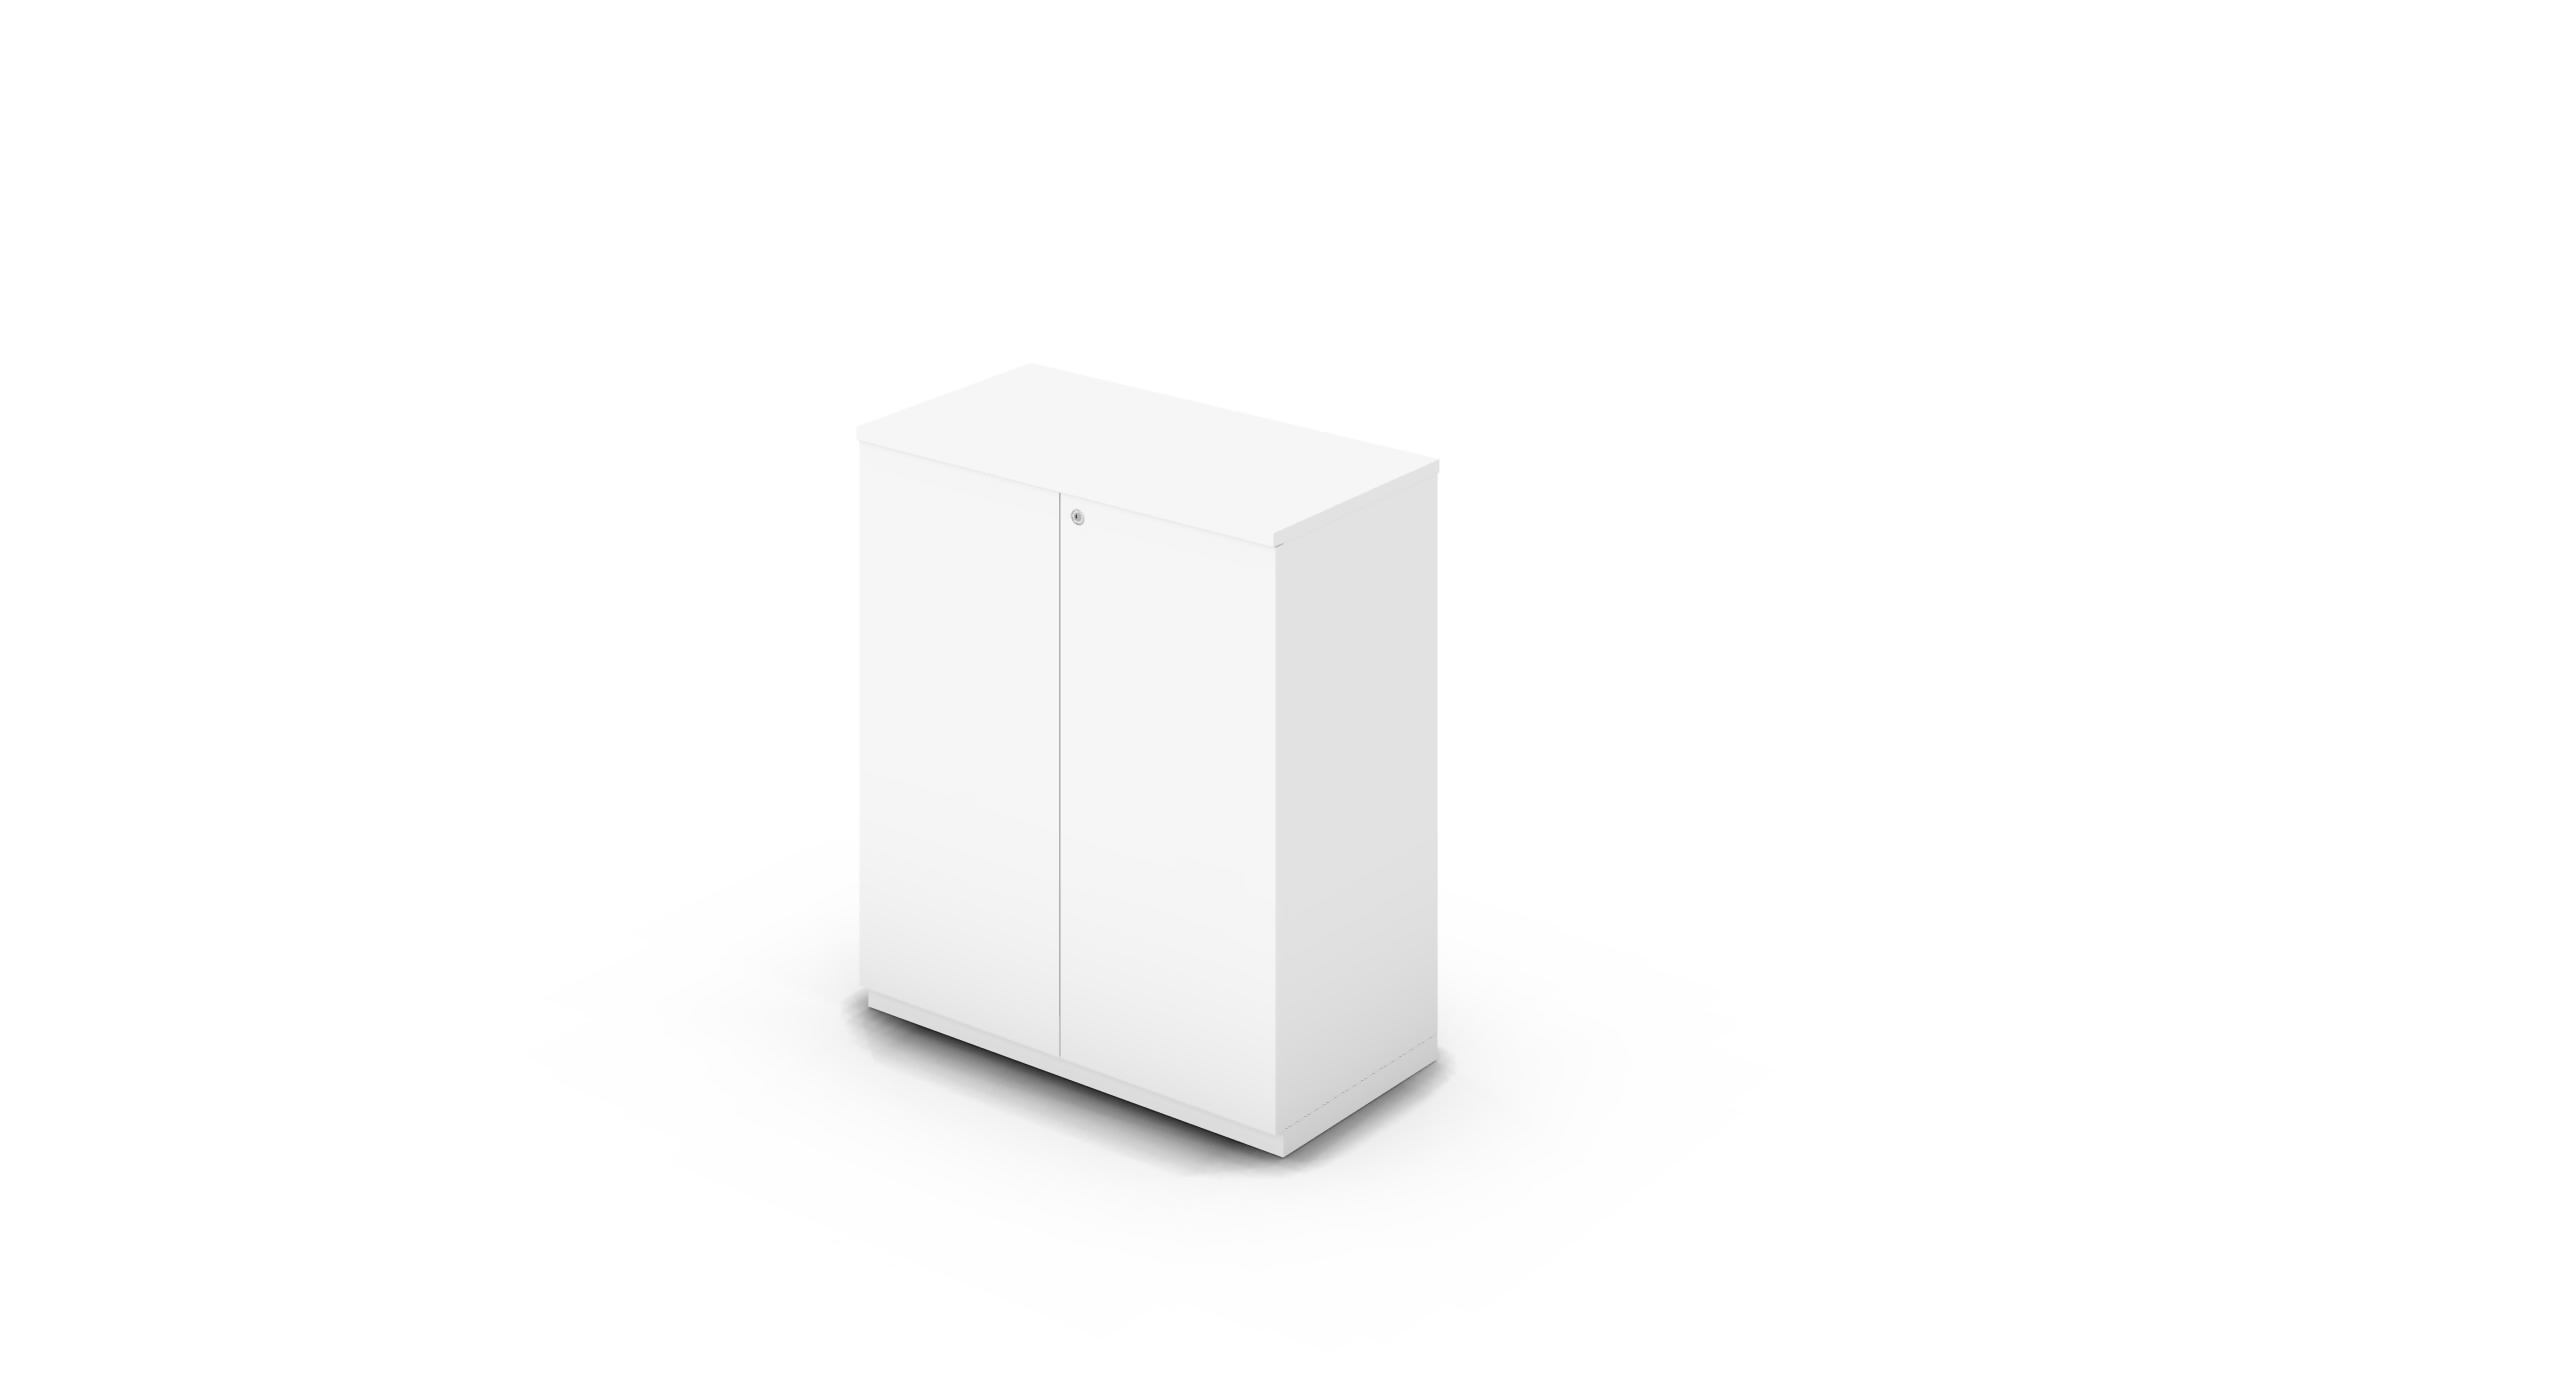 Cabinet_900x450x1125_HD_White_Push_WithCylinder